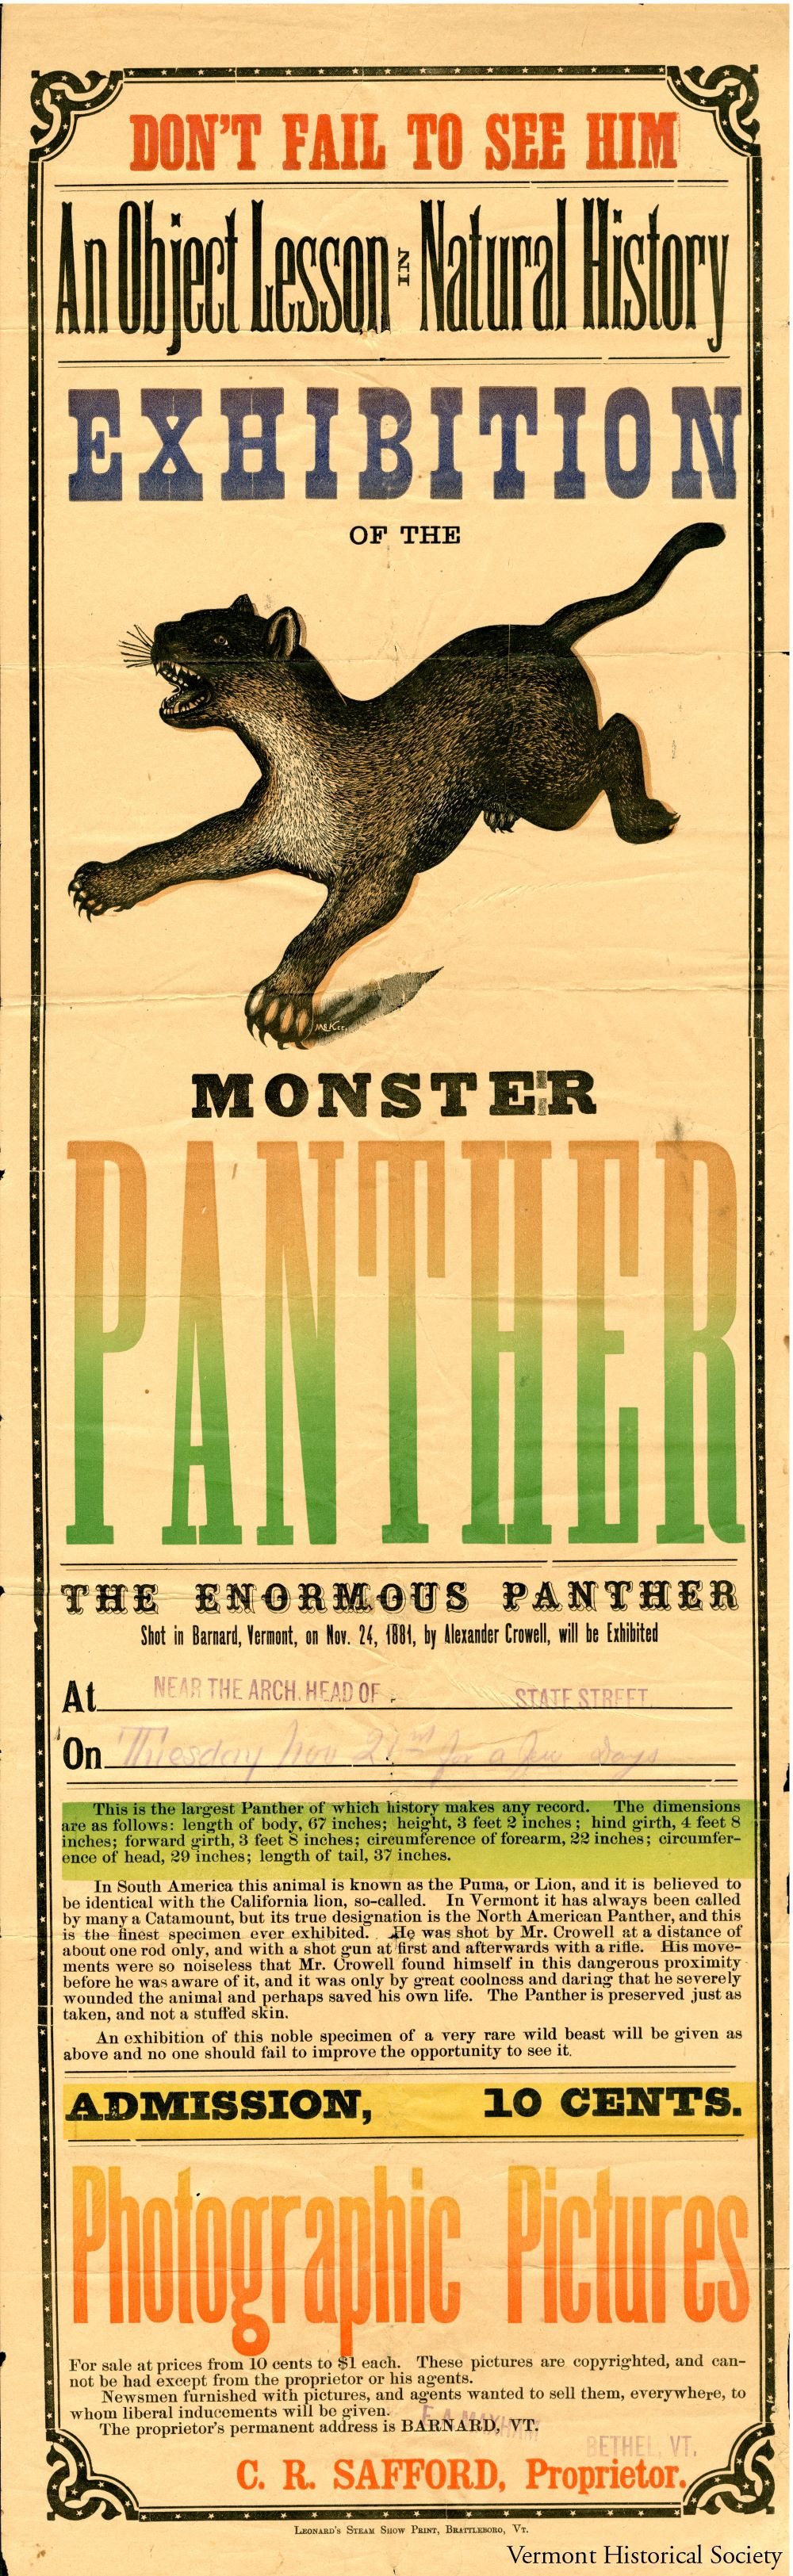 Would this poster make you want to see the Monster Panther? Why or why not?